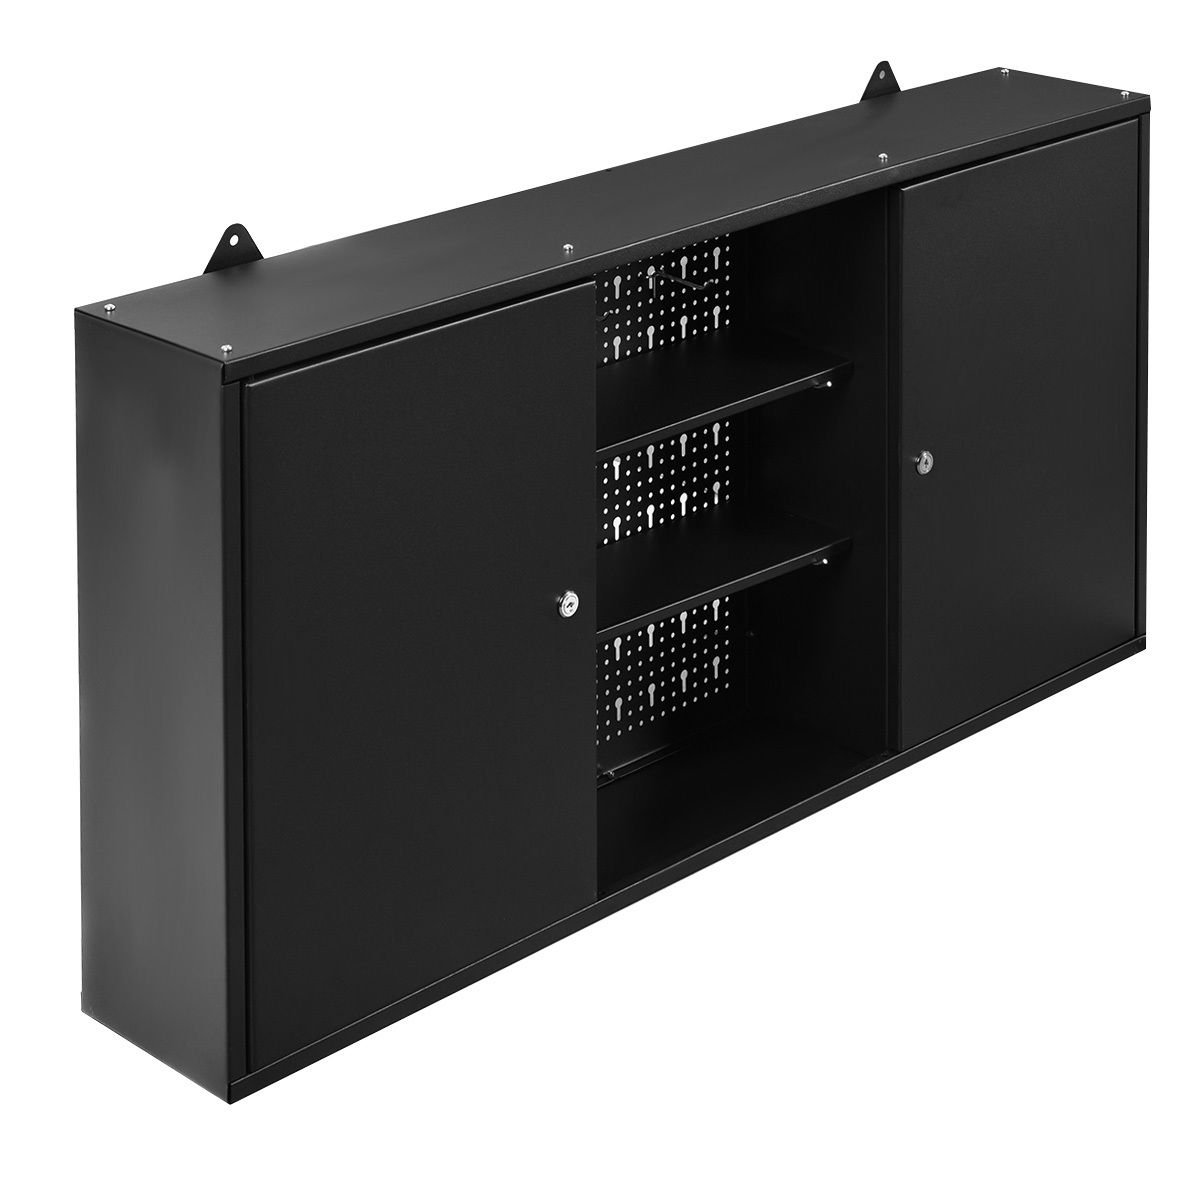 NEW Wall Mount Hanging Tool Box Storage Cabinet Lock Home Office Garage Black Color